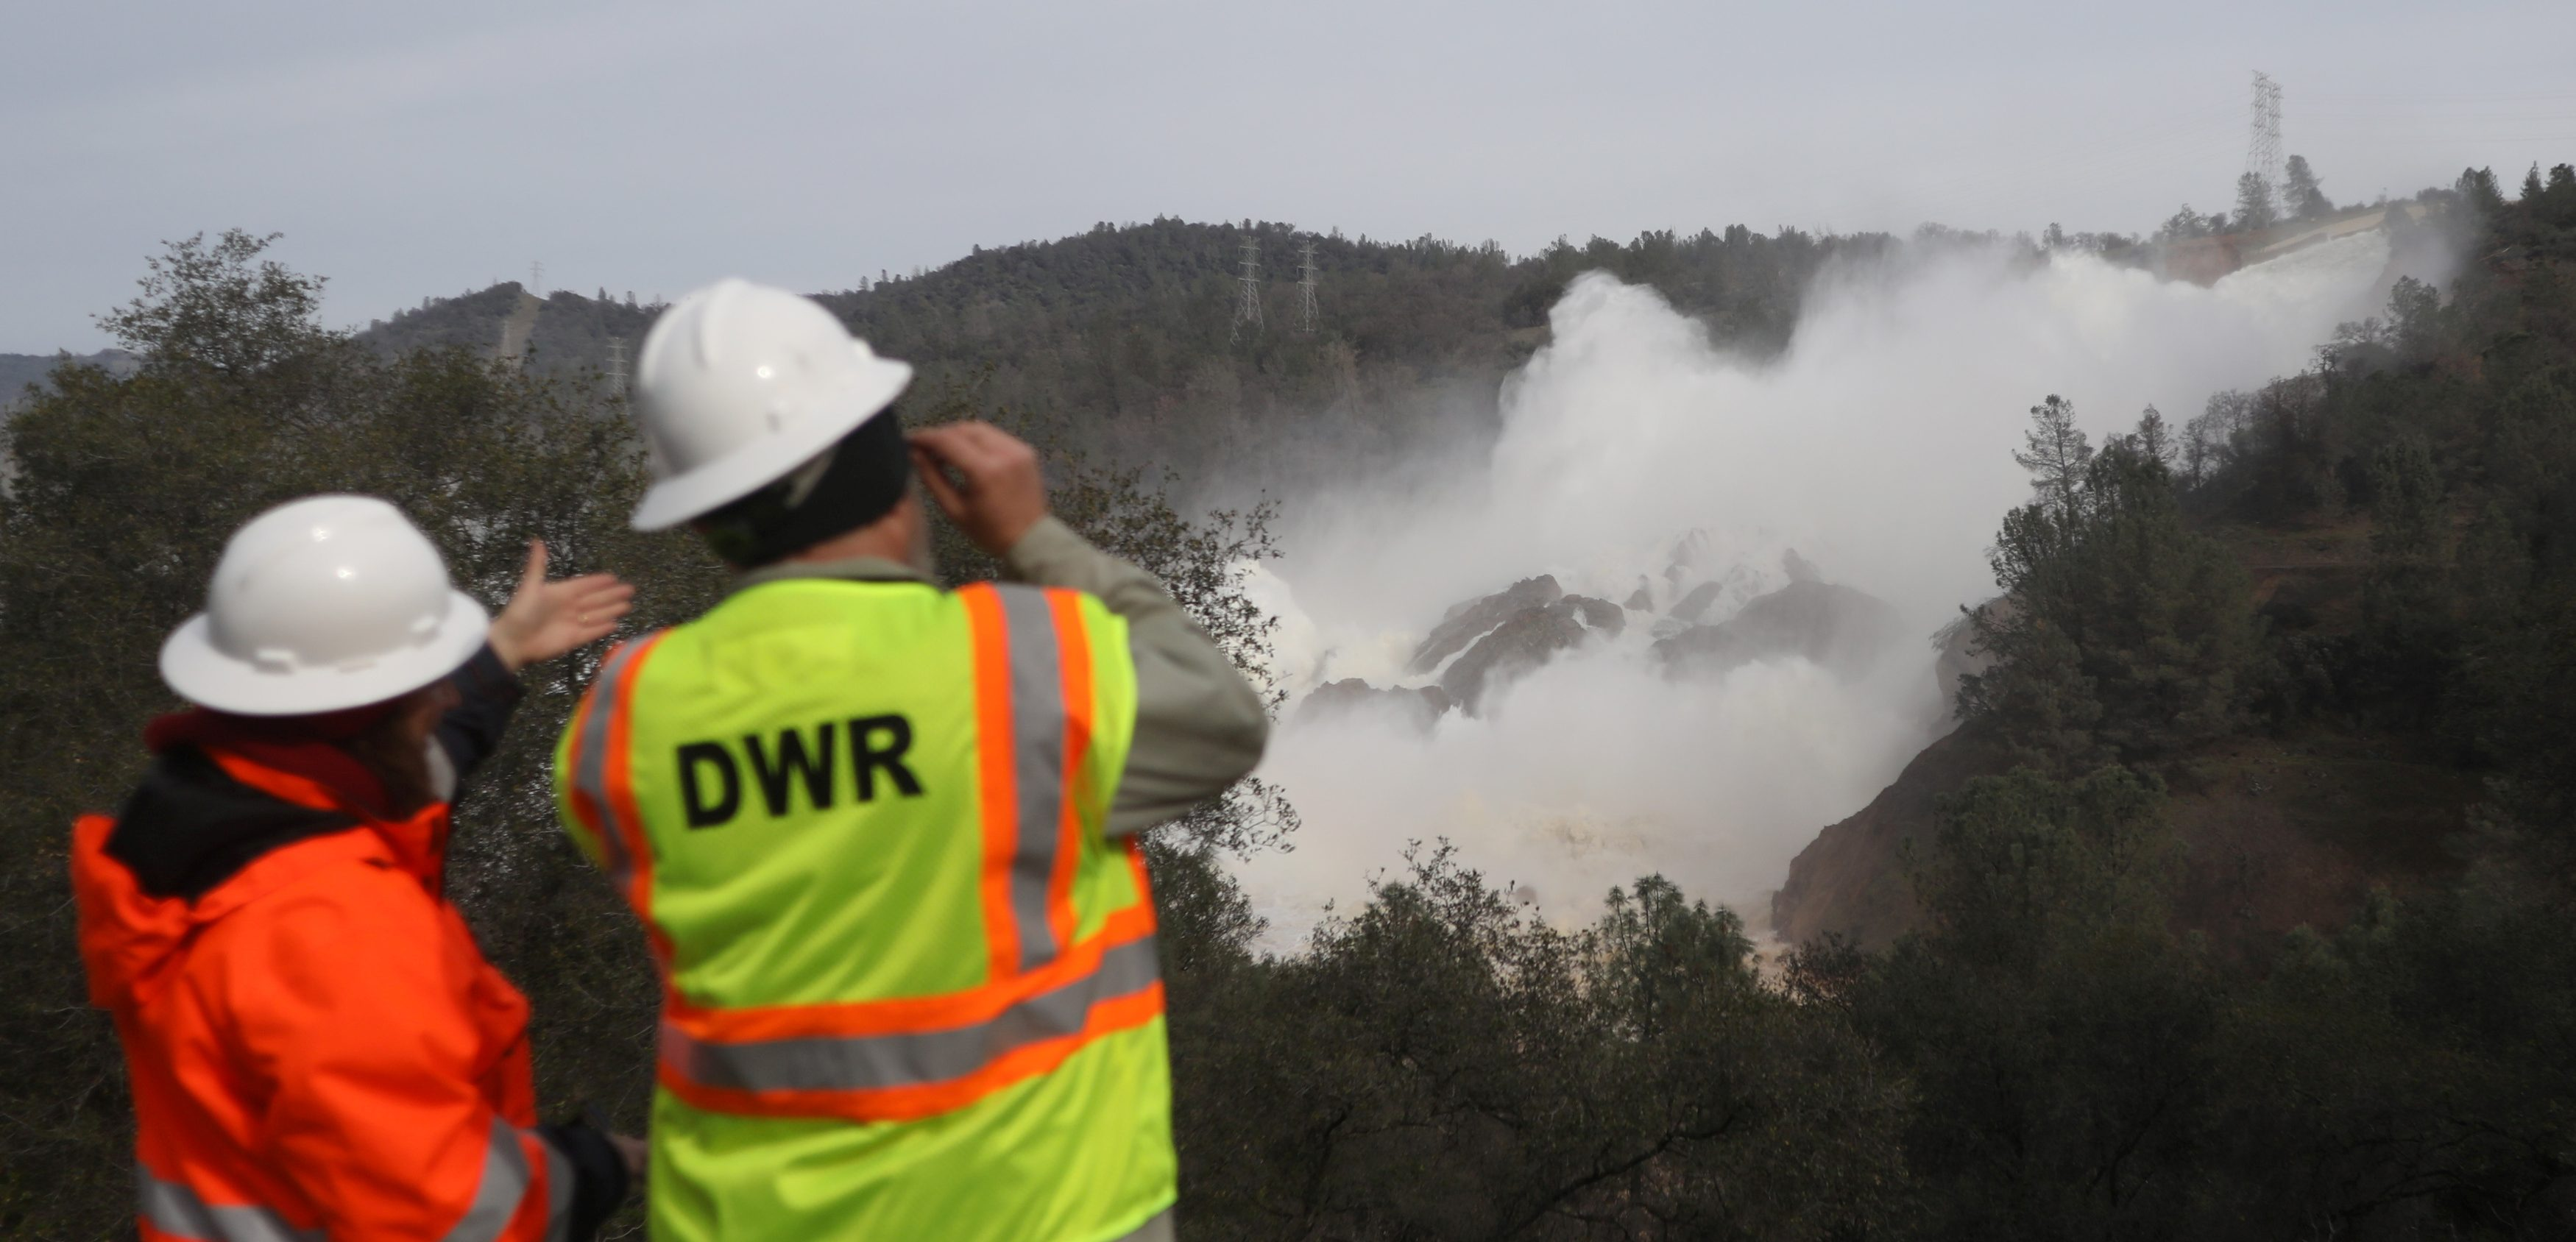 Staff with the California Department of Water Resources watch as water is released from the Lake Oroville Dam.